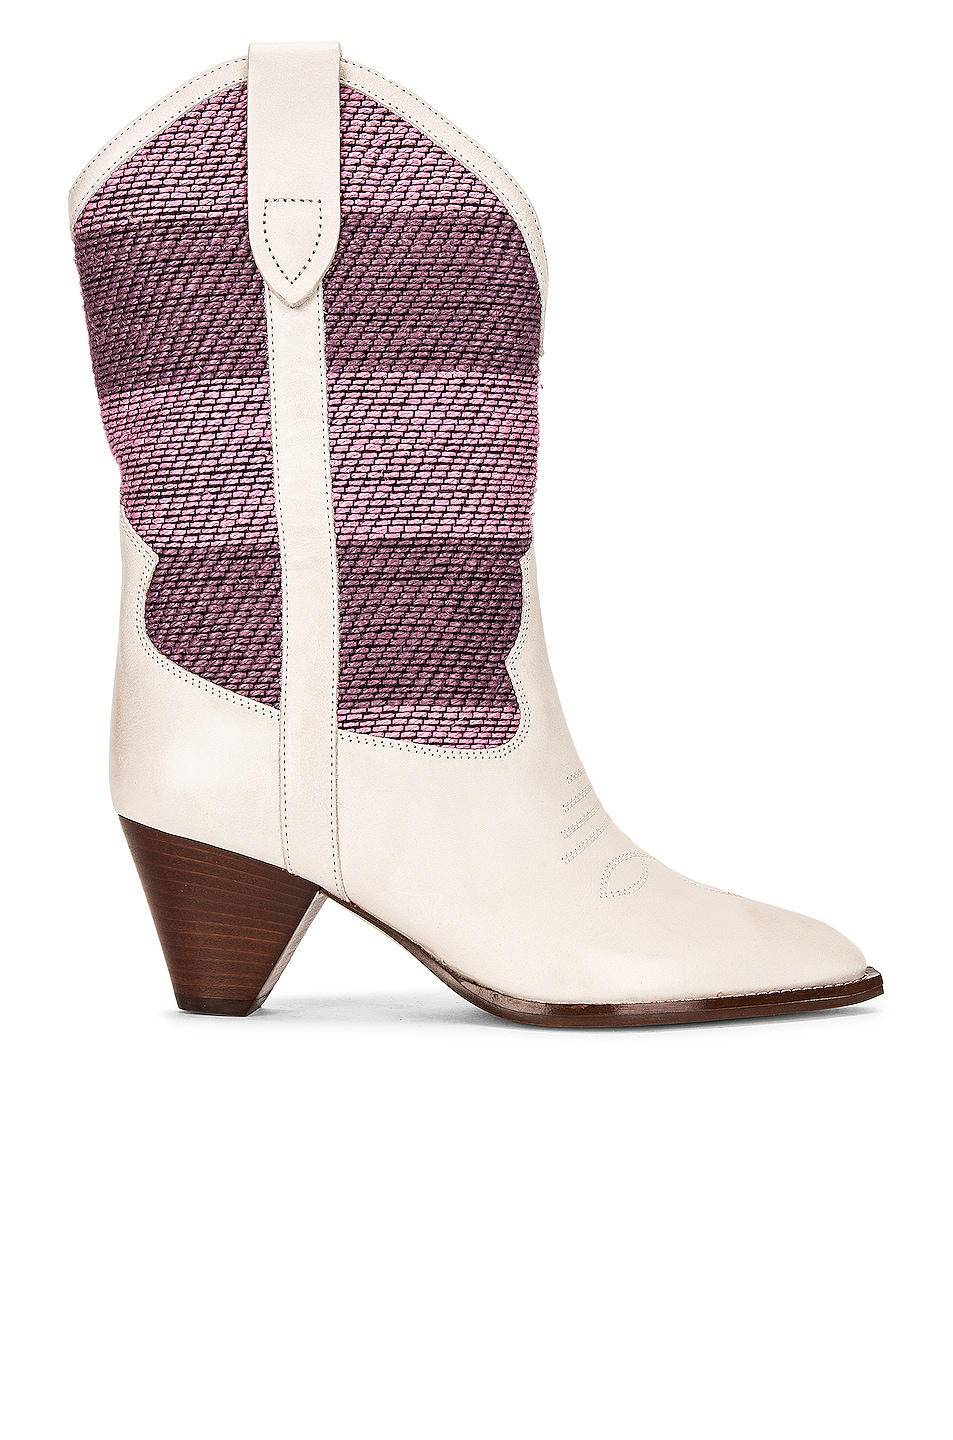 Image 1 of Isabel Marant Luliette Boot in Pink